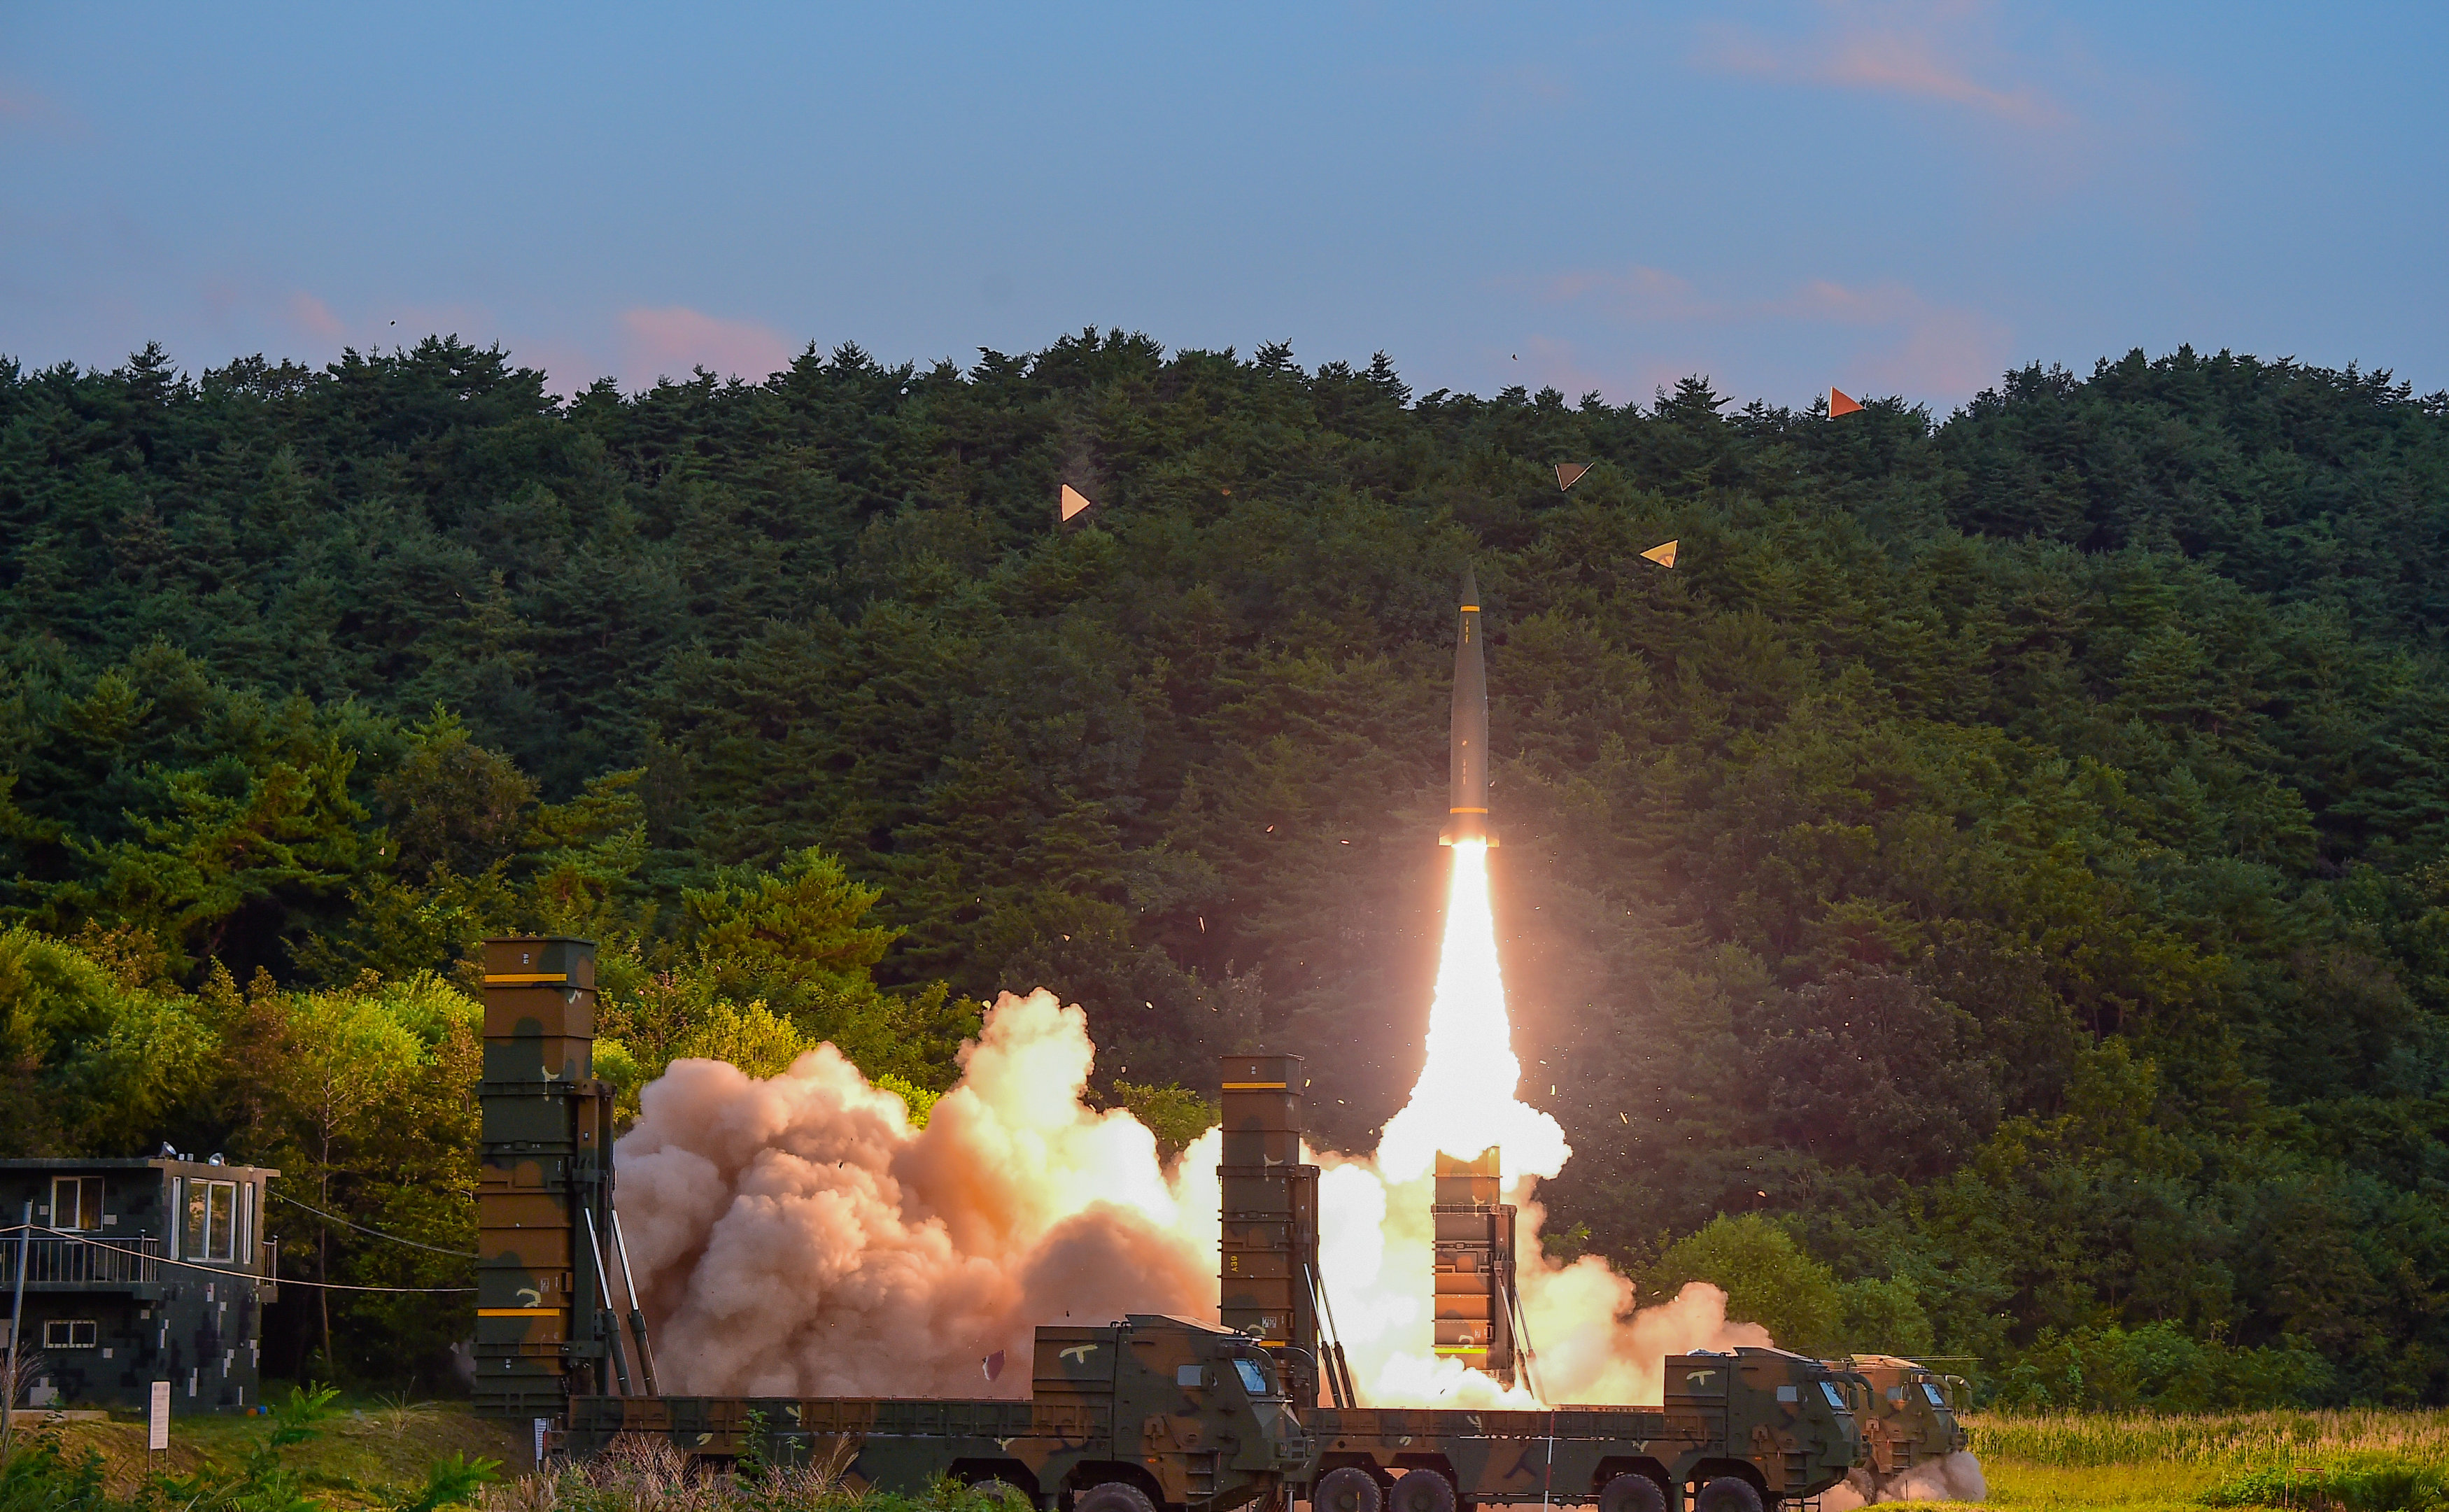 South Korean troops fire Hyunmoo Missile into the waters of the East Sea at a military exercise in South Korea Sept. 4, 2017. (Defense Ministry/Yonhap/via REUTERS)